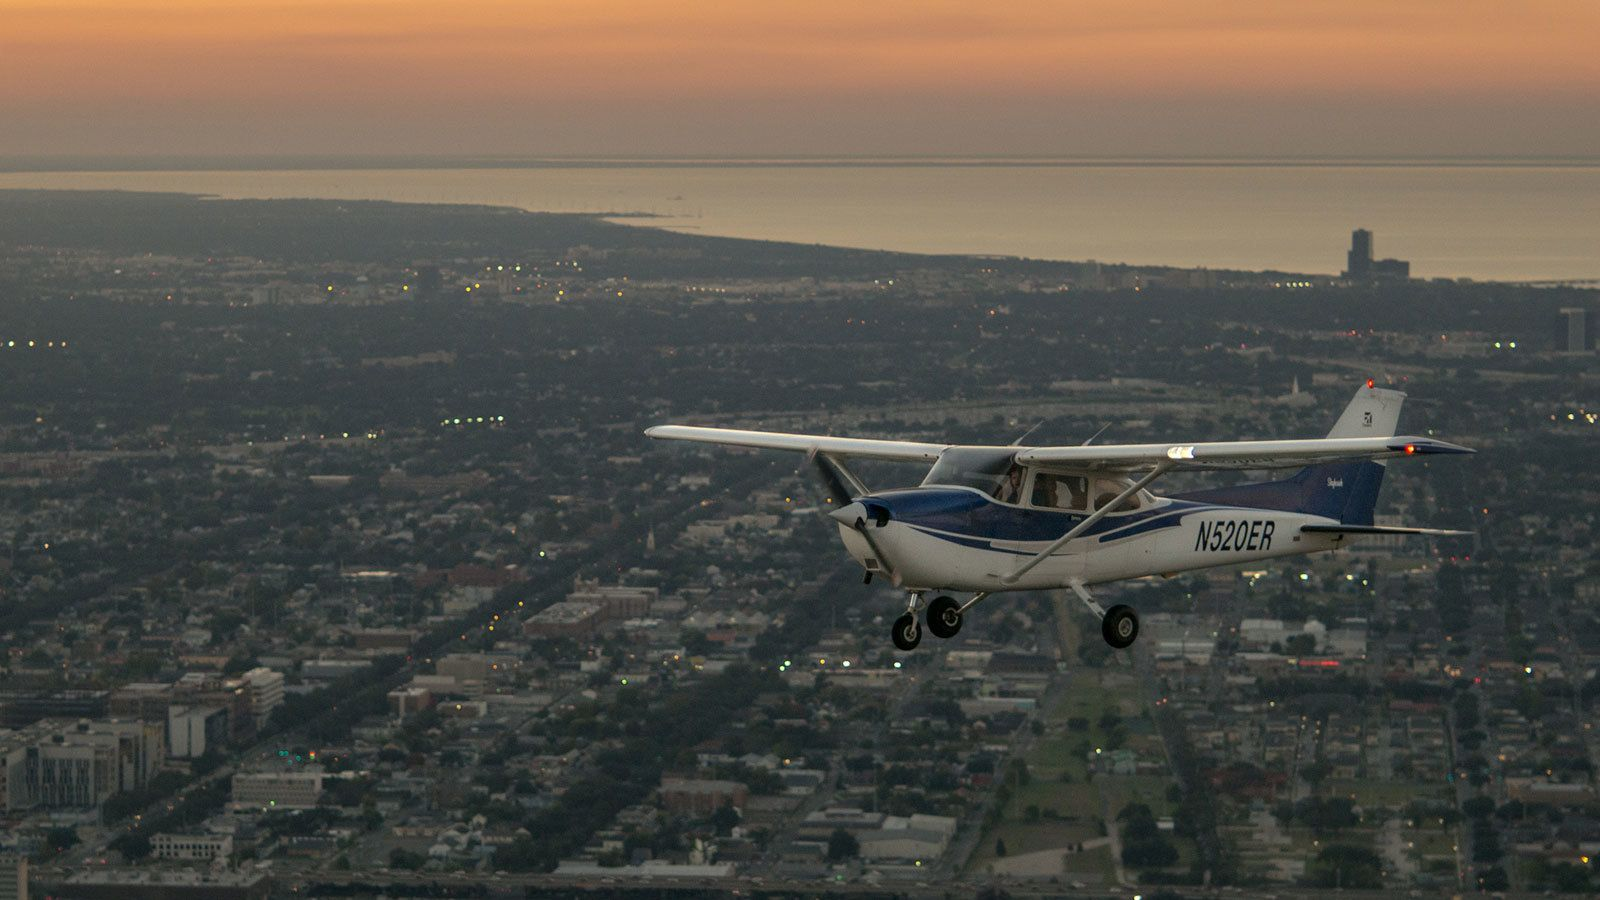 airplane flying above city of New Orleans